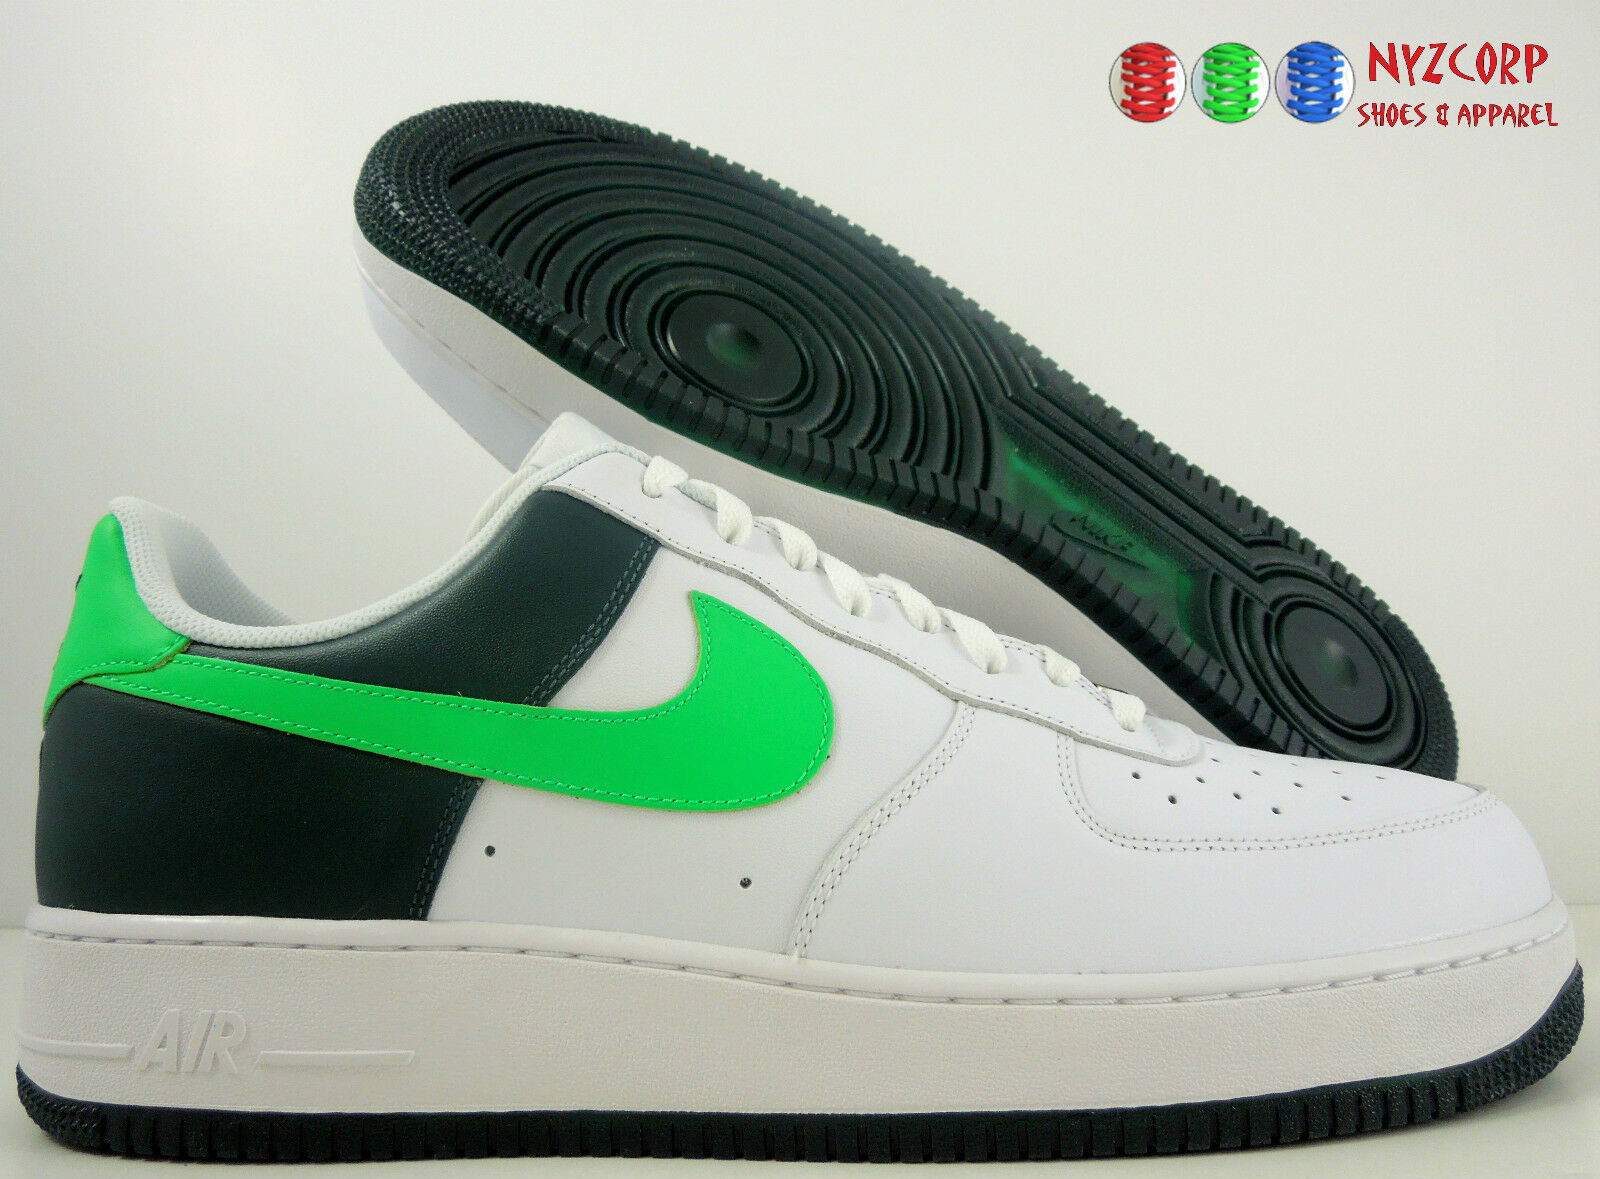 a0e8b46be8b09 NIKE AIR FORCE 1 07 WHITE-BRIGHT KIWI-DARK PINE PINE PINE SZ 15 ...